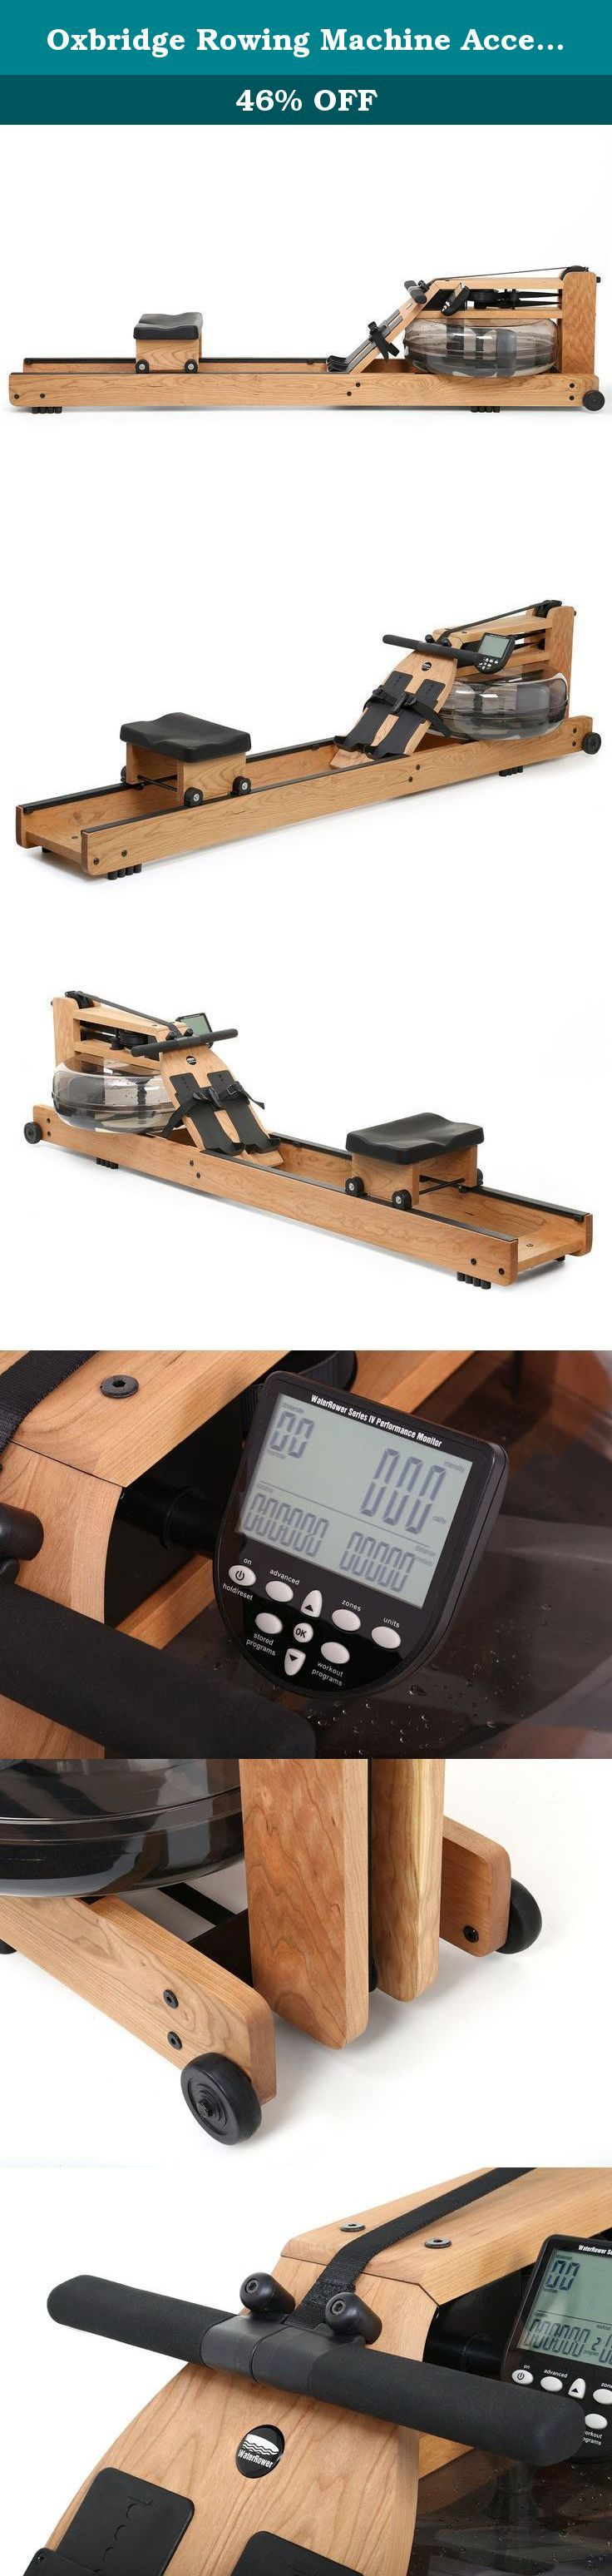 Oxbridge Rowing Machine Accessories: None. Oxbridge Accessories: None Features: -Performance monitor - The series 4 performance monitor has been designed to balance technical sophistication with user - friendliness. -Displays workout intensity, stroke rate, heart rate, zone bar, duration, and distance. -Series 4 performance monitor will allow you to optimize your workout. -Achieve your exercise objectives and encourages you to exercise regularly. Frame Material: -Wood. Country of...